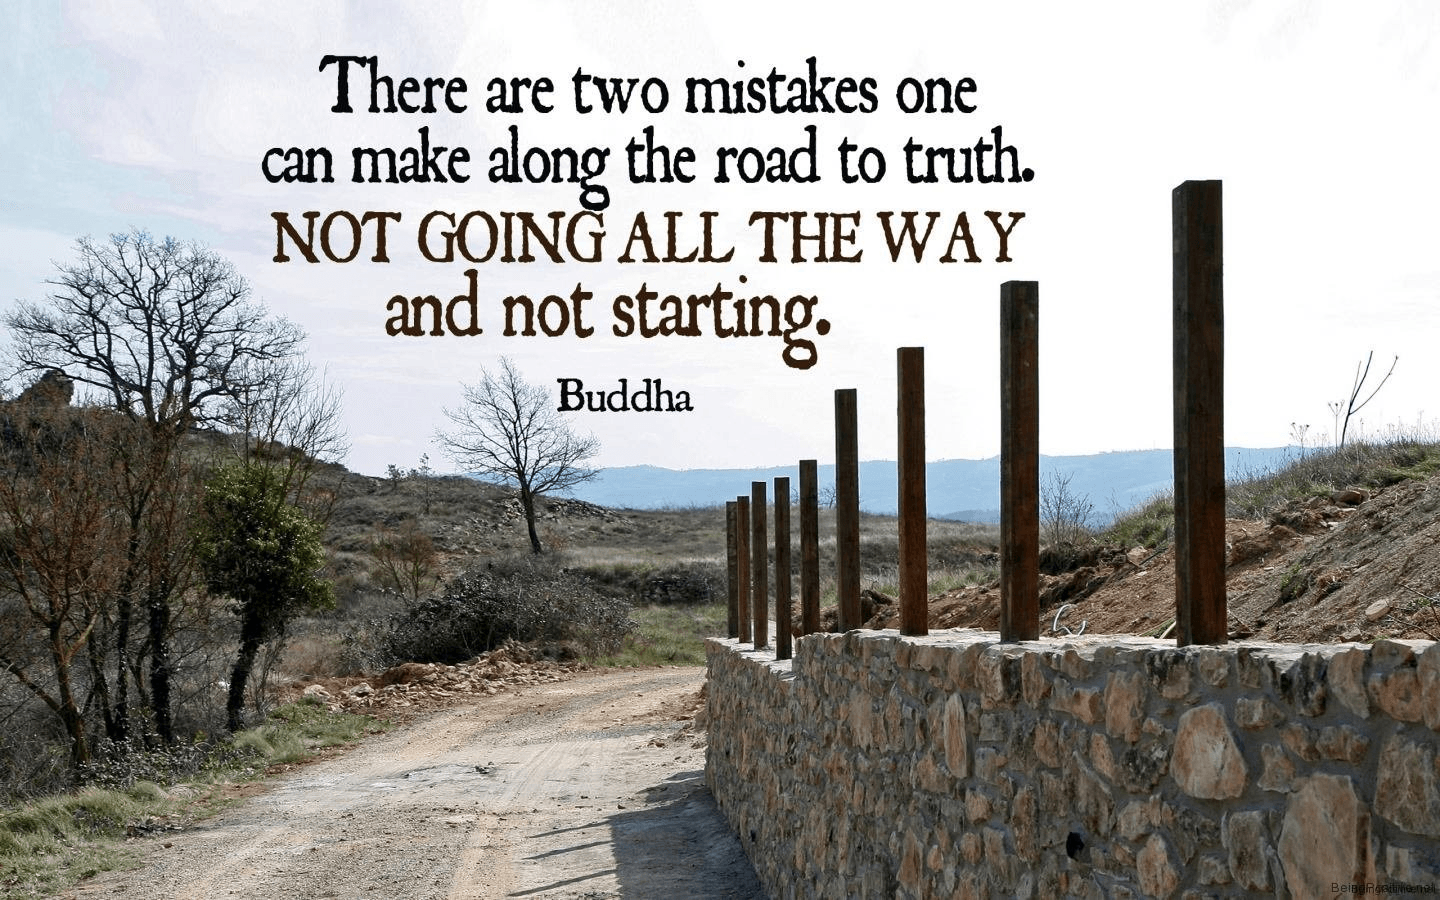 """There are two mistakes one can make along the road to truth. NOT GOING ALL THE WAY and not starting."" – Buddha [1440 x 900]"